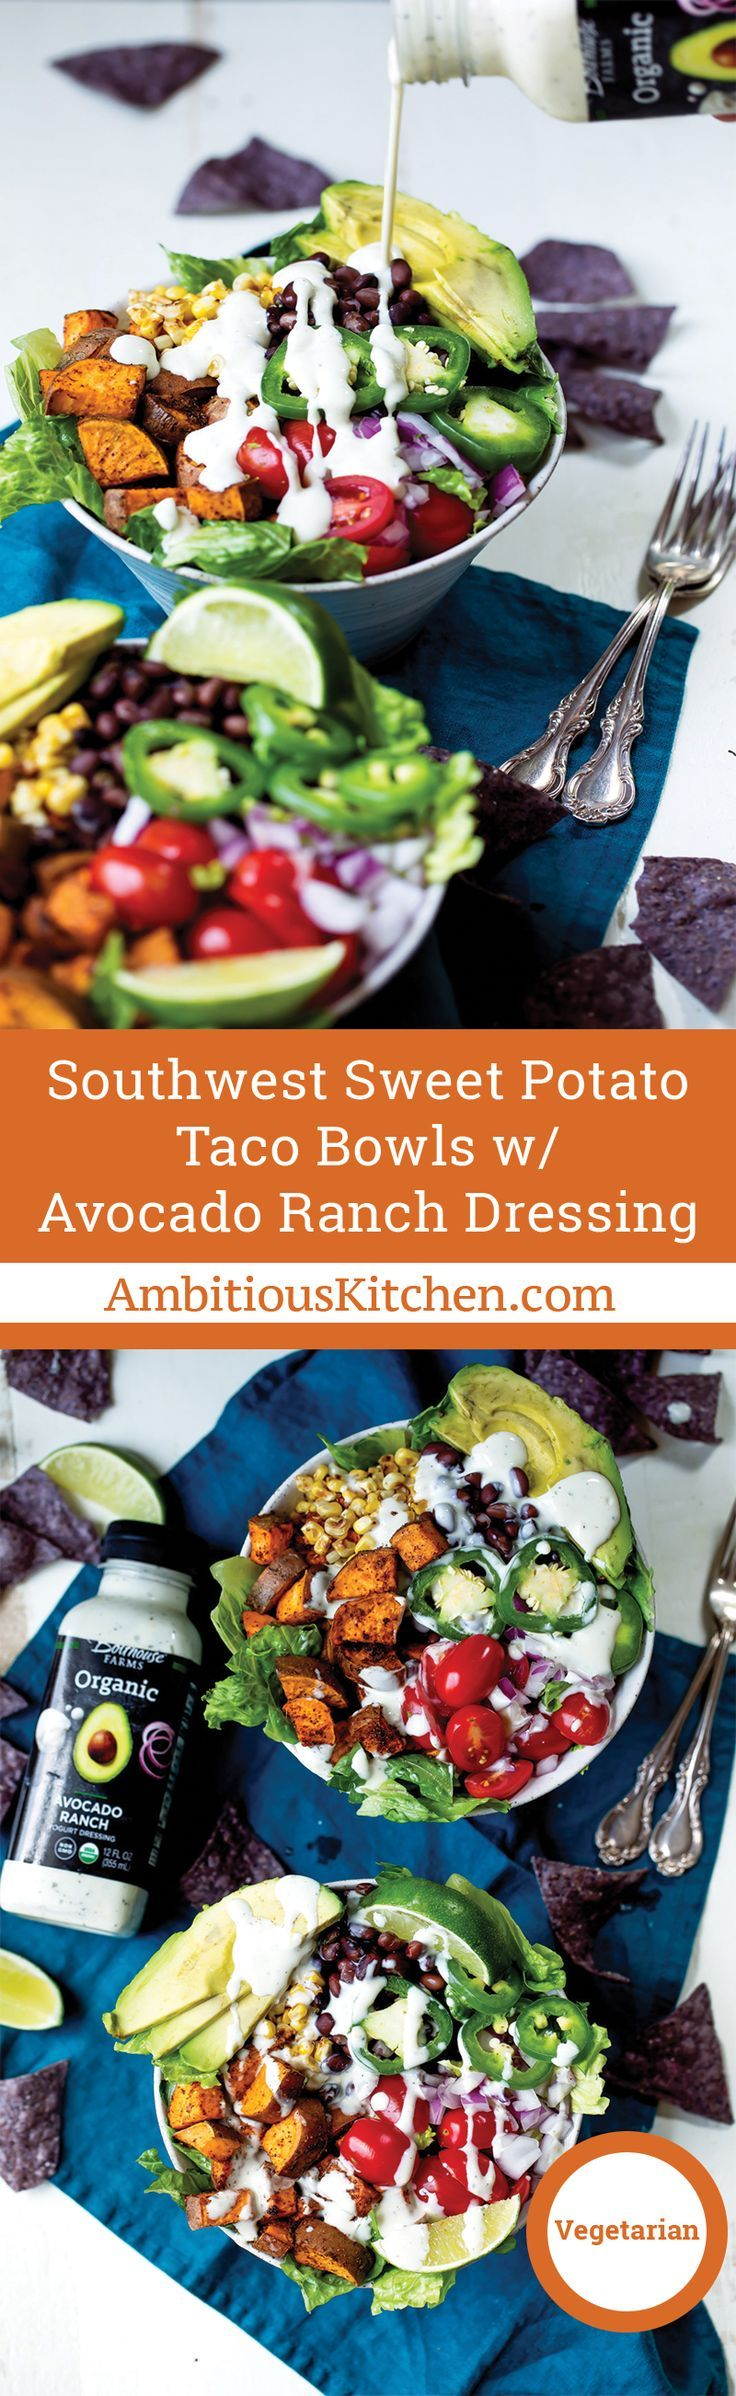 Amazing sweet potato taco bowls packed with plant based protein and your favorite southwest flavors, then drizzled with Bolthouse Farms Avocado Ranch yogurt dressing! Easy to make ahead of time & perfect to pack for lunch.